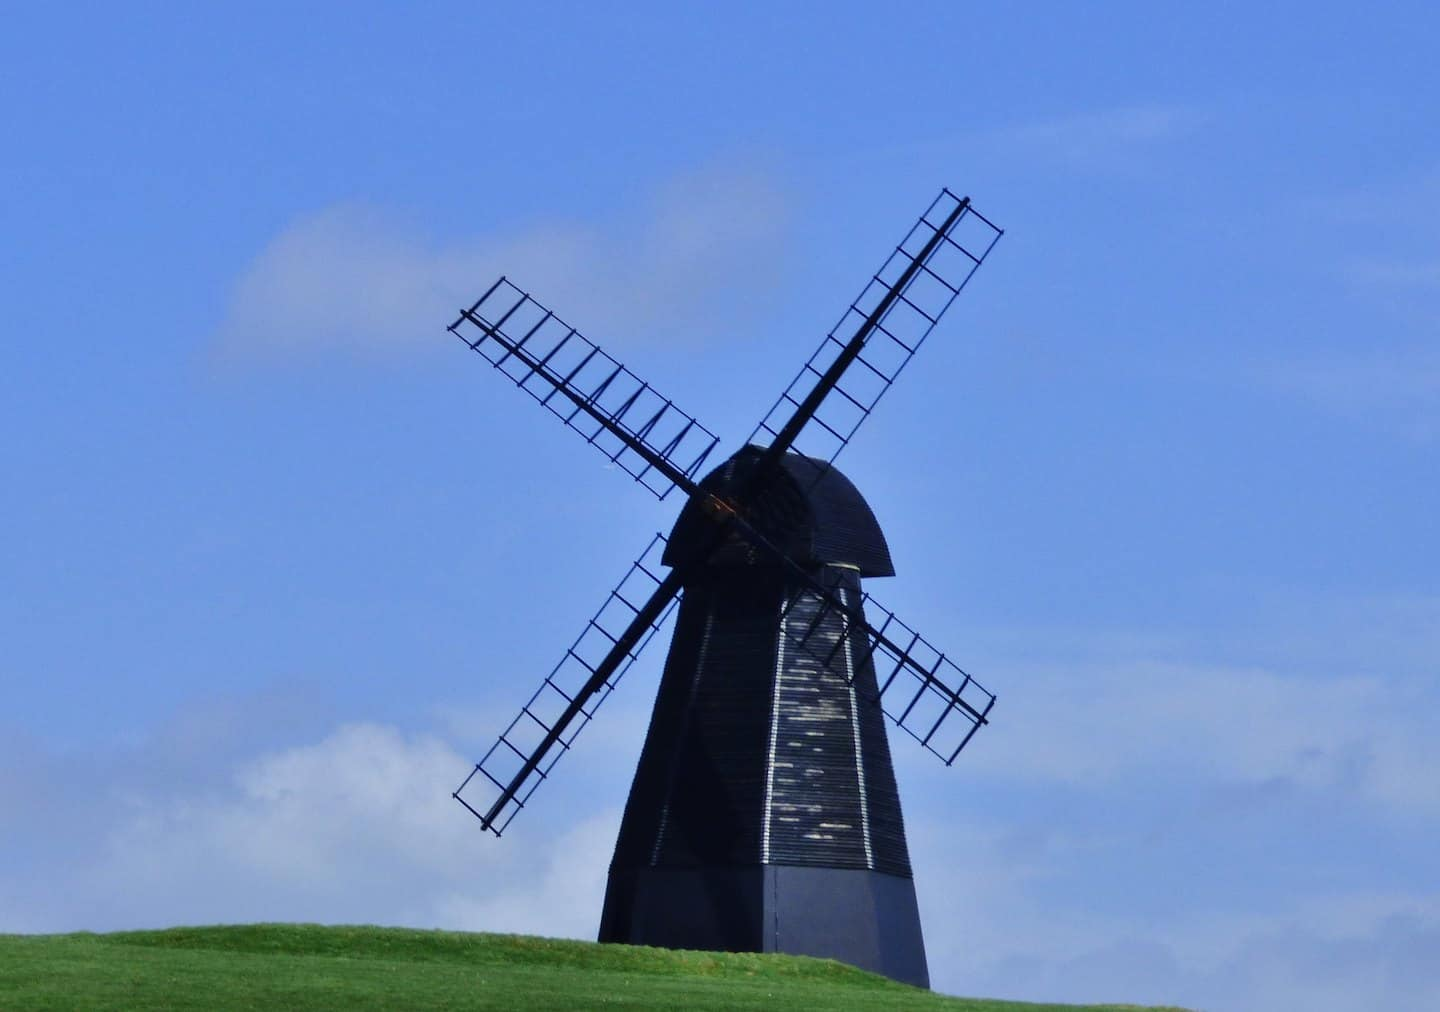 Rottingdean Windmill by GrassRootsGroundswell